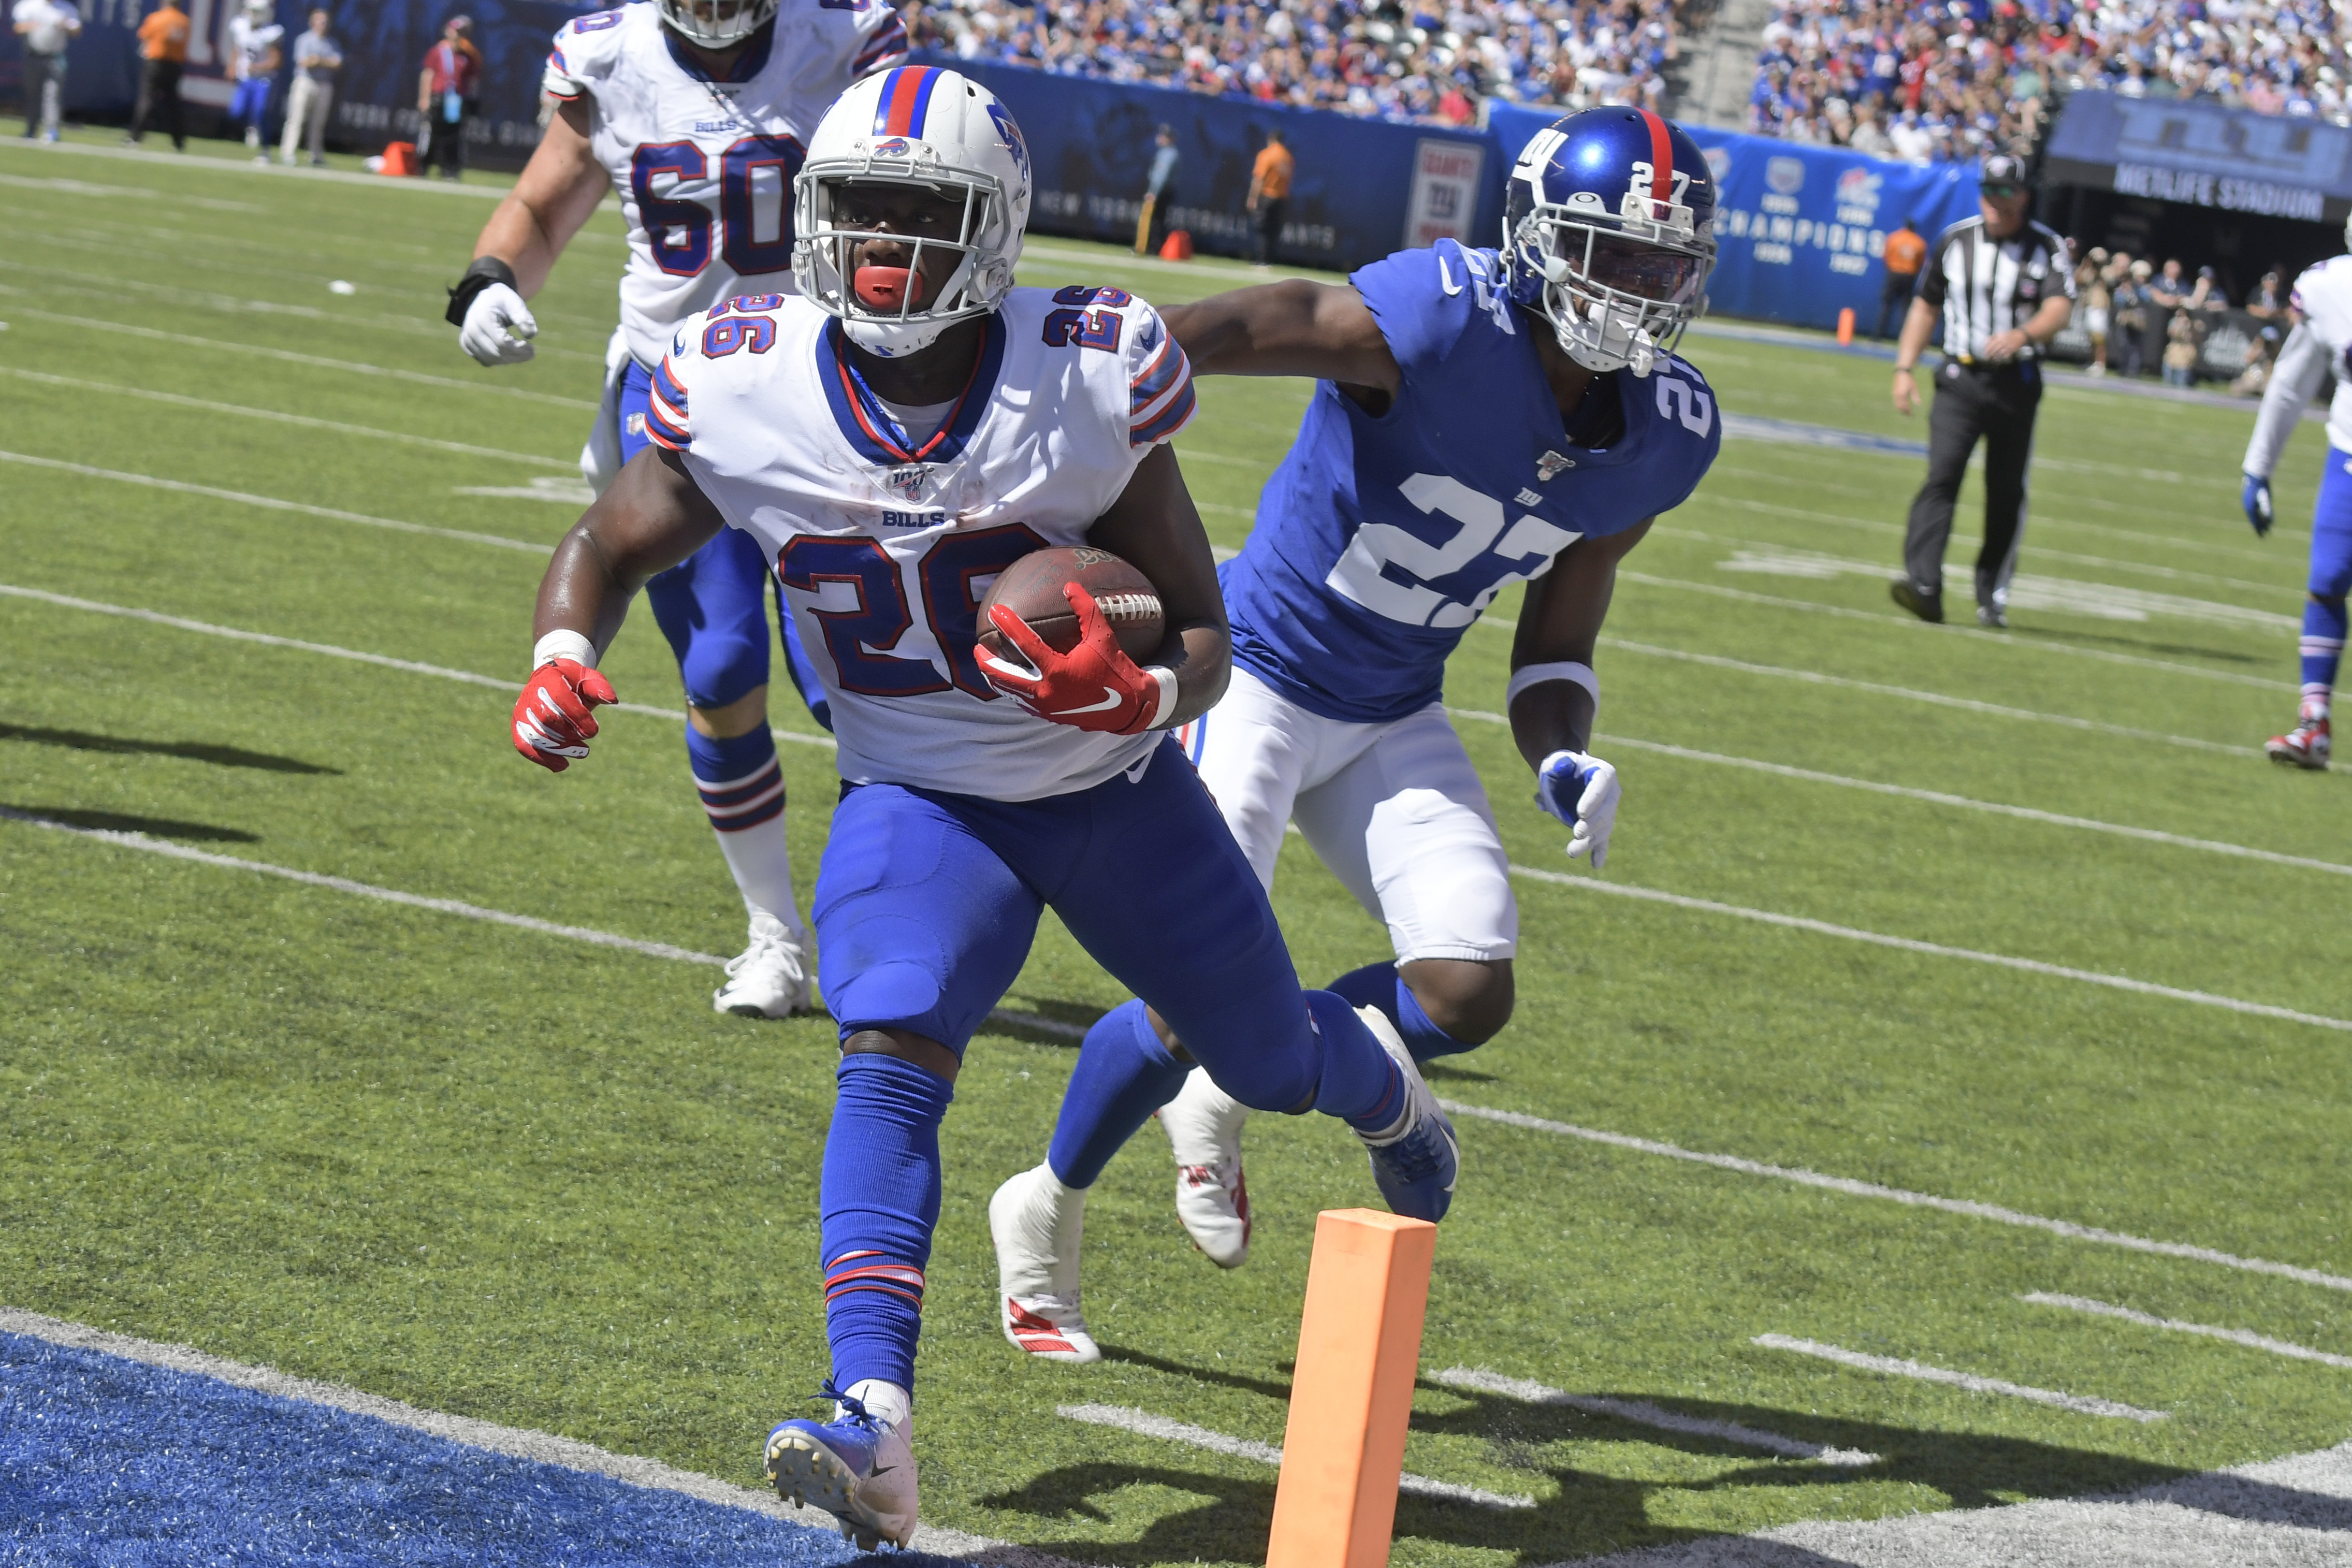 Buffalo Bills may hold RB Devin Singletary out of Titans game as a precaution